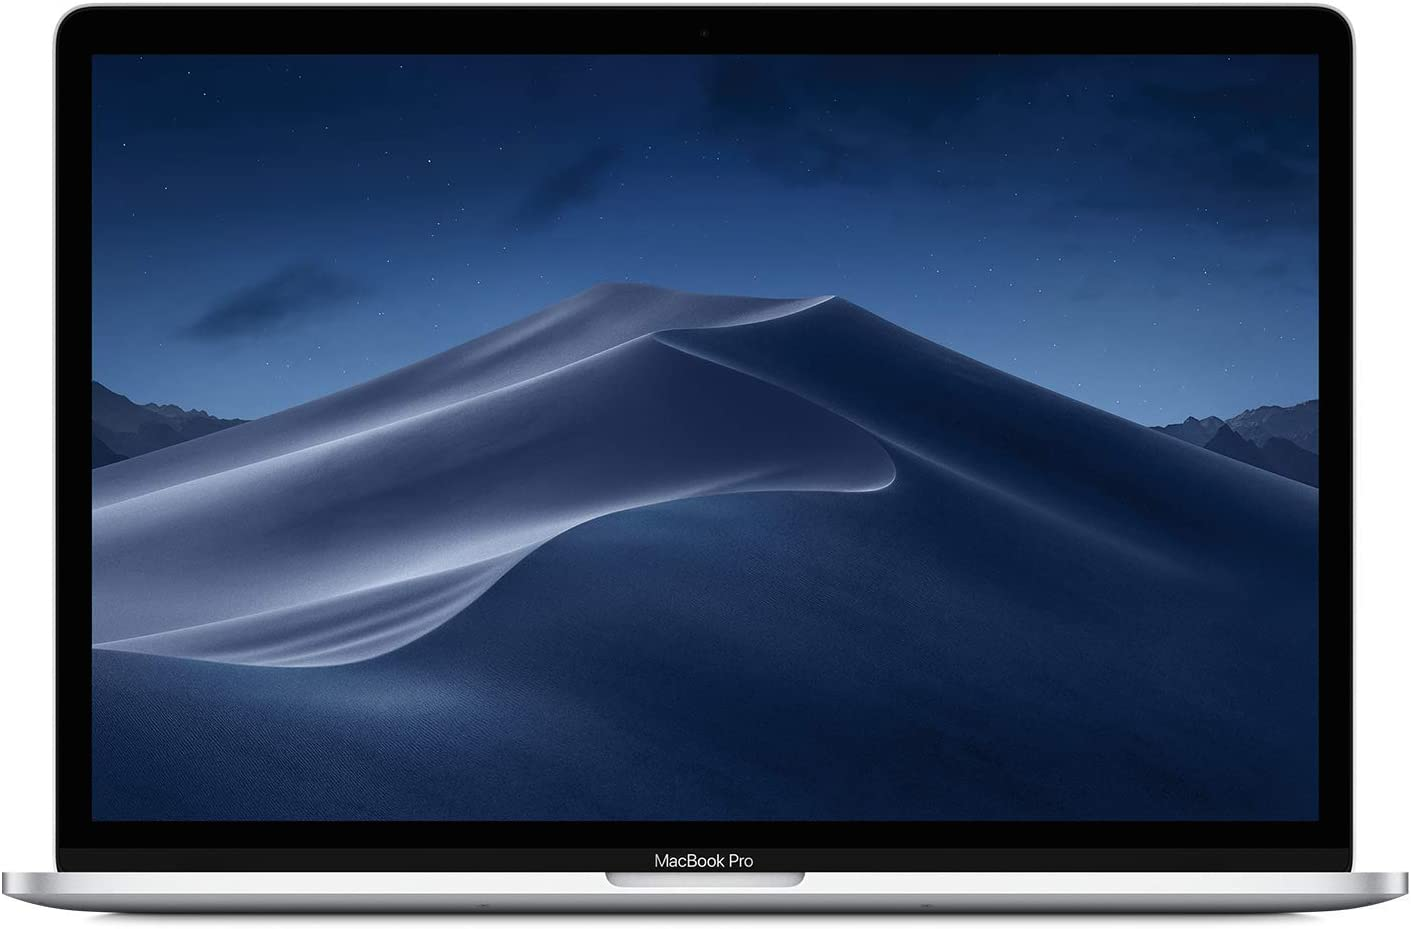 "Apple 15.4"" MacBook Pro Retina Display, Touch Bar, 2.2GHz ,Intel Core i7 Six-Core, 16GB RAM, 256GB SSD - Silver (Renewed)"